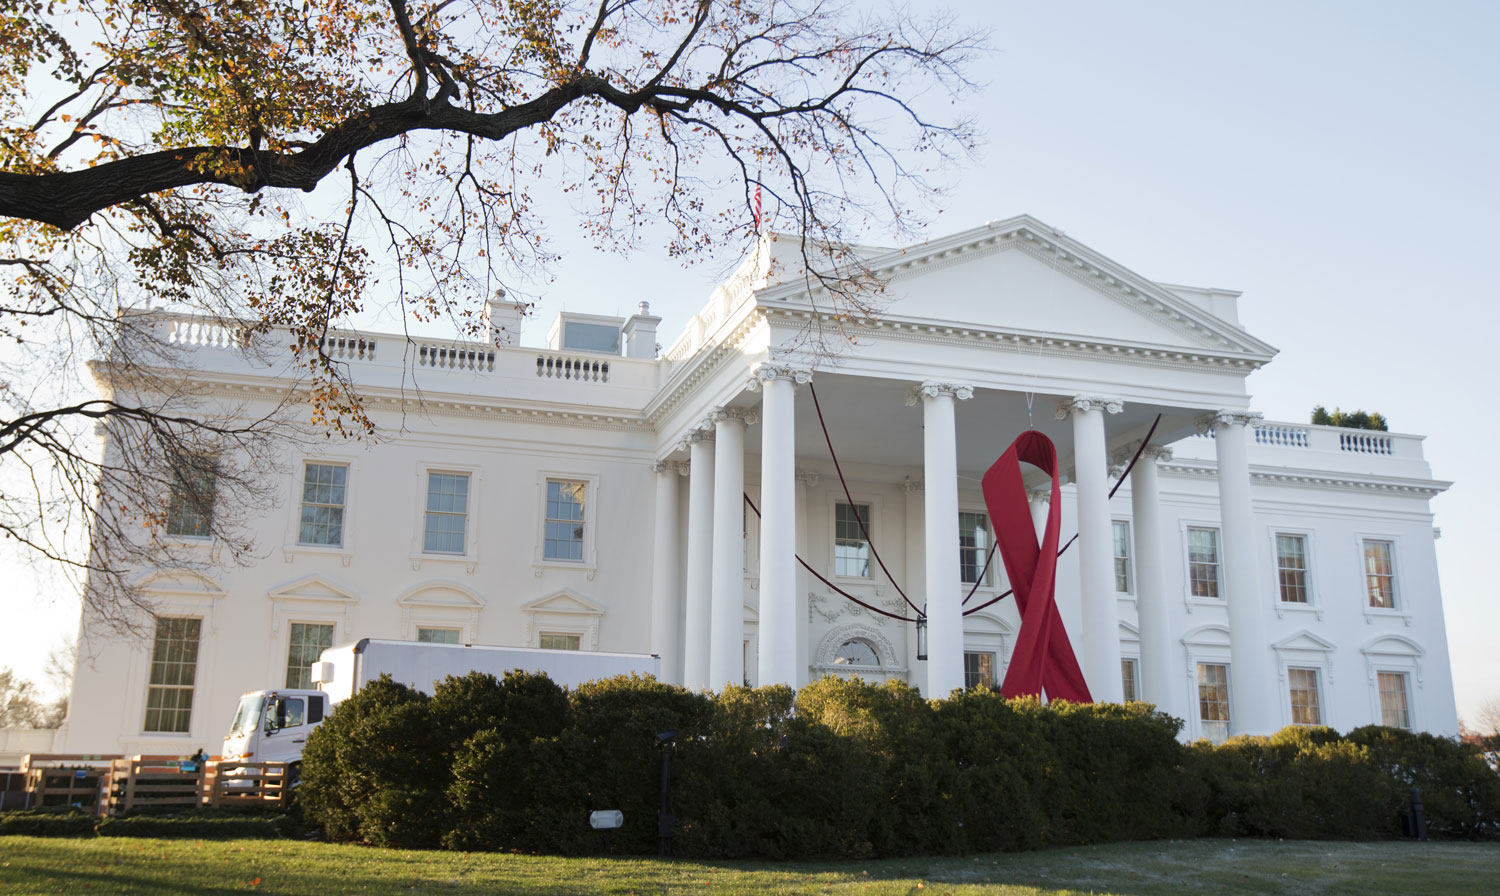 The-White-House-on-World-AIDS-Day-Sunday-Dec.-1-2013-AP-PhotoManuel-Balce-Ceneta